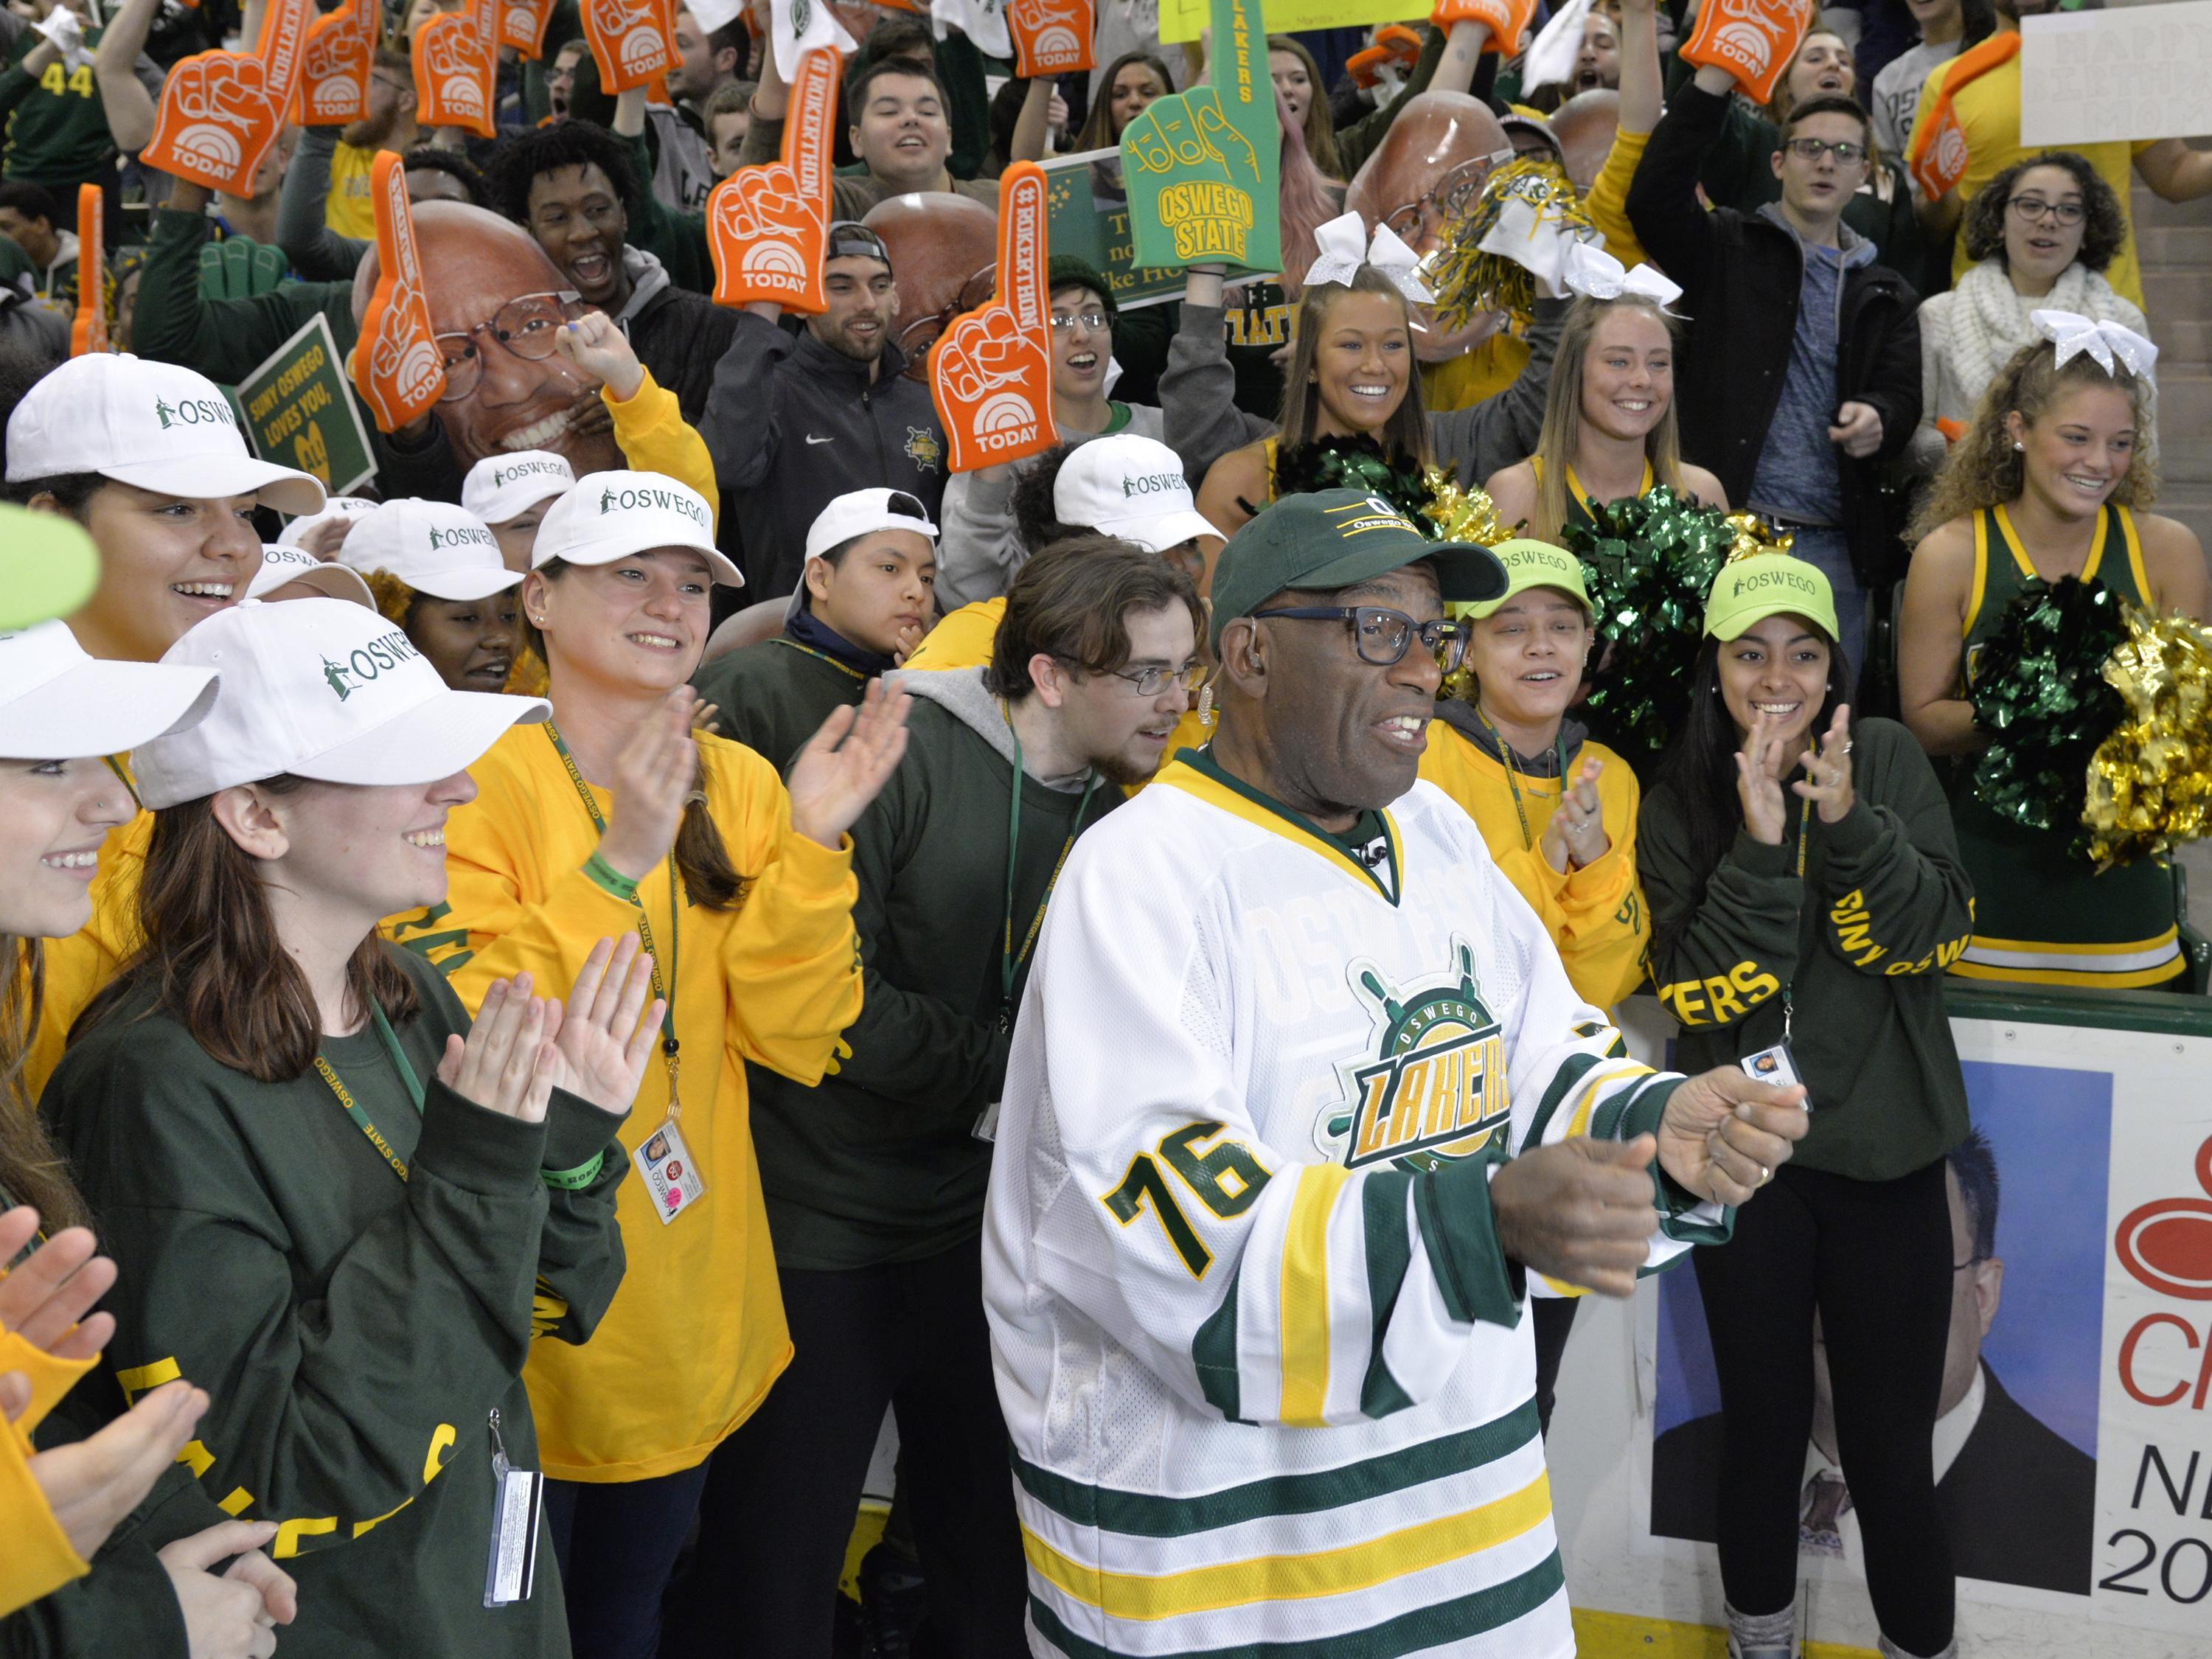 Al Roker broadcasts from his alma mater of SUNY Oswego during the 2017 Rokerthon